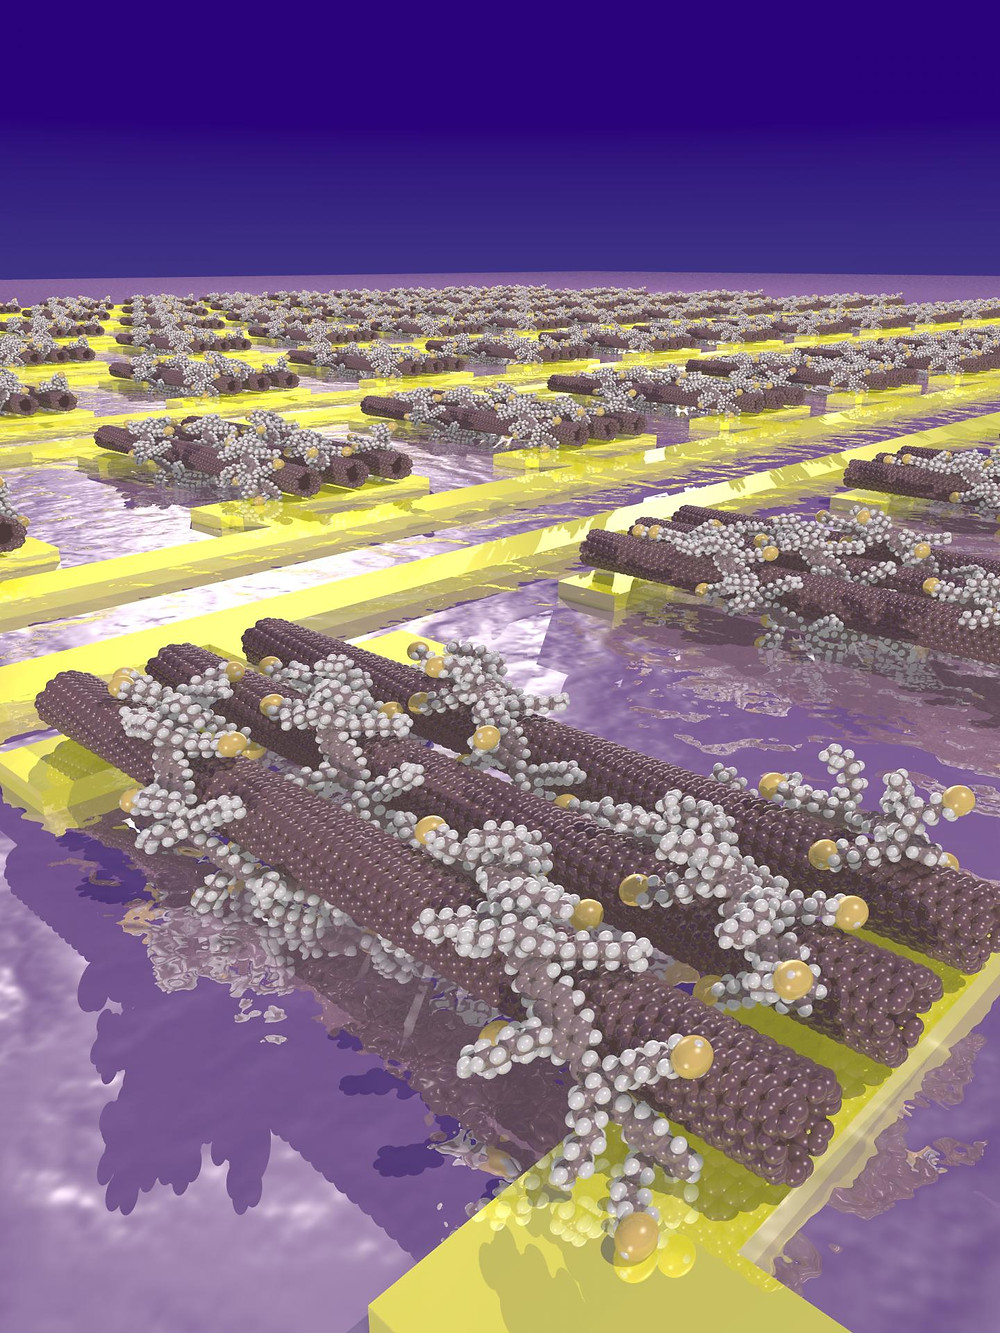 This is an artist's impression of carbon nanotubes wrapped in polymers with thiol side chains (yellow spheres) and assembled on gold electrodes. @ Arjen Kamp